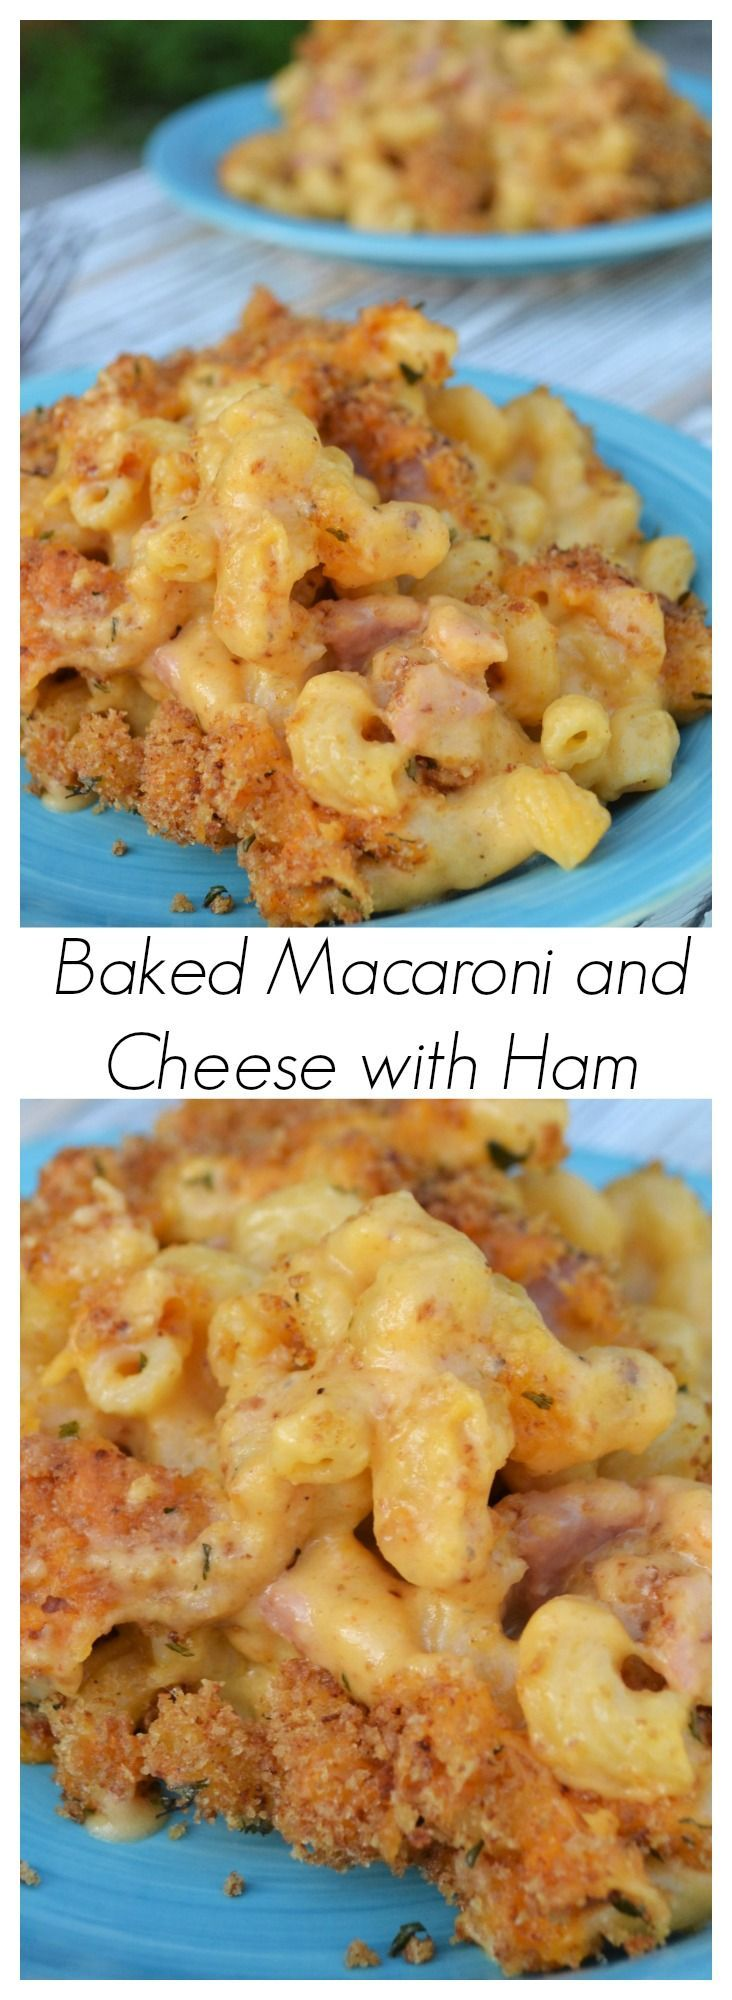 Click below and treat your family to the very best in comfort food. ...Or just treat yourself, I won't tell  http://www.packmomma.com/baked-macaroni-and-cheese-with-ham/